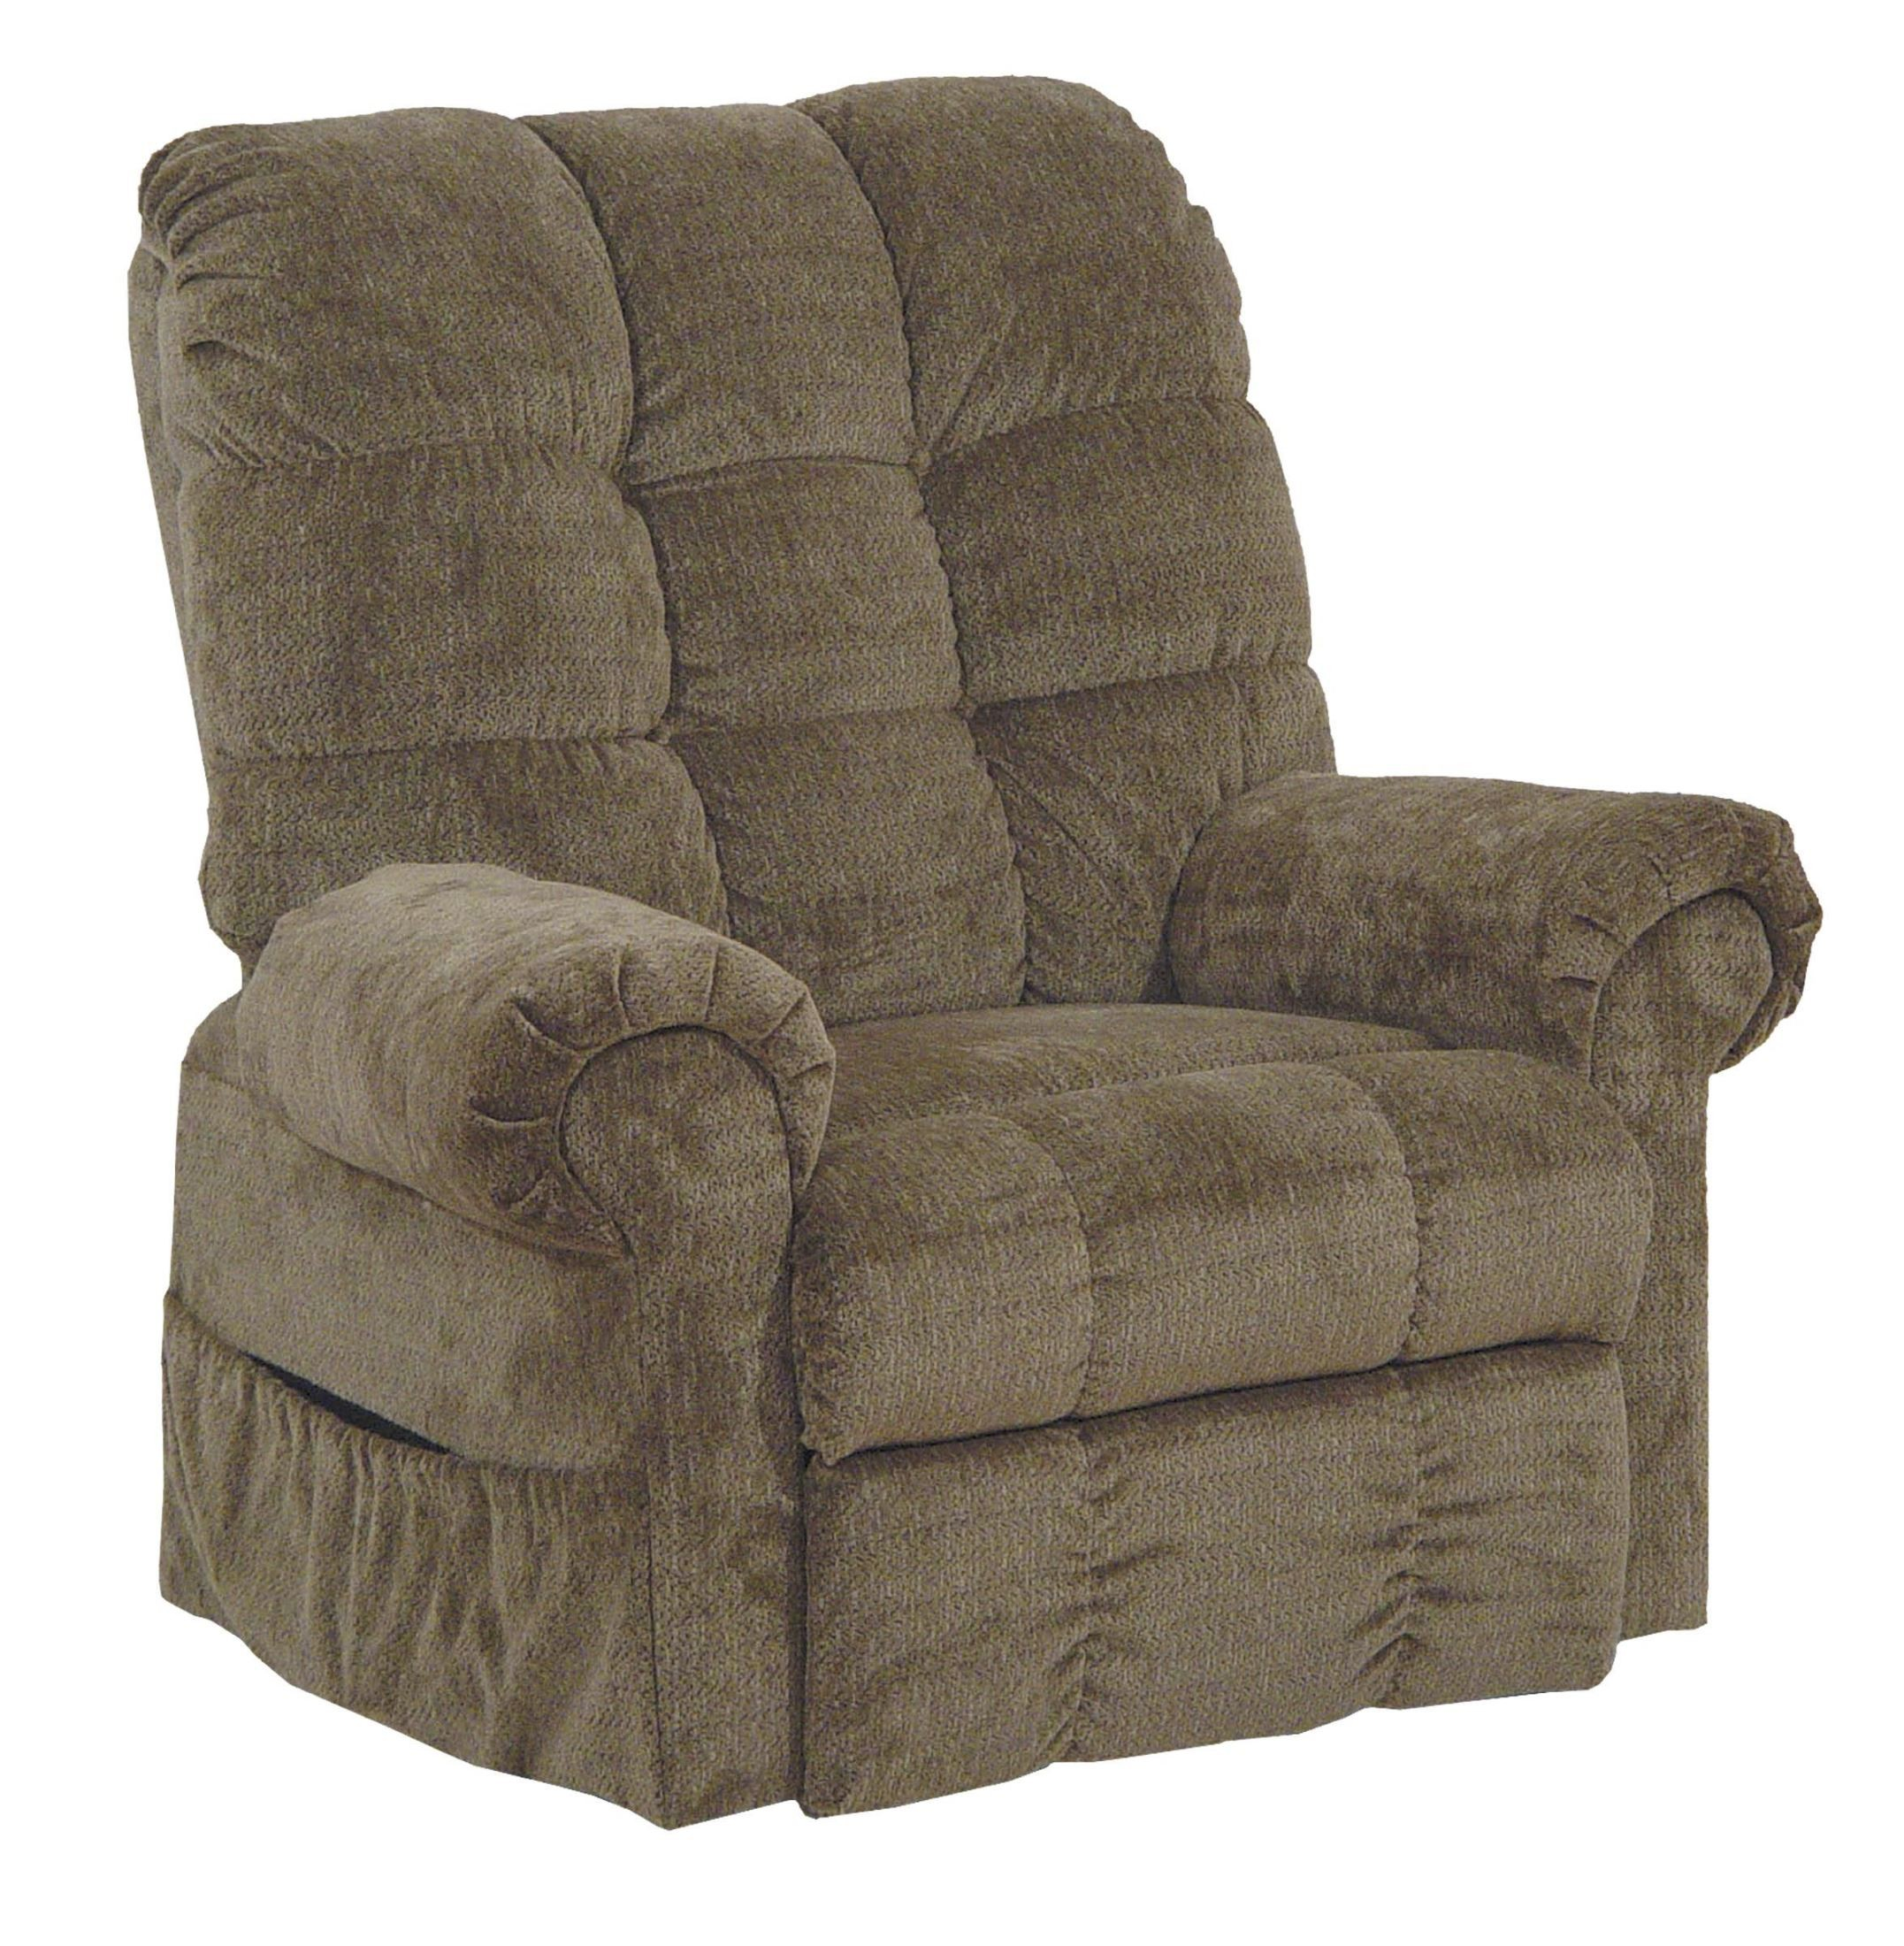 Omni thistle power lift recliner from catnapper for Catnapper cloud nine chaise recliner